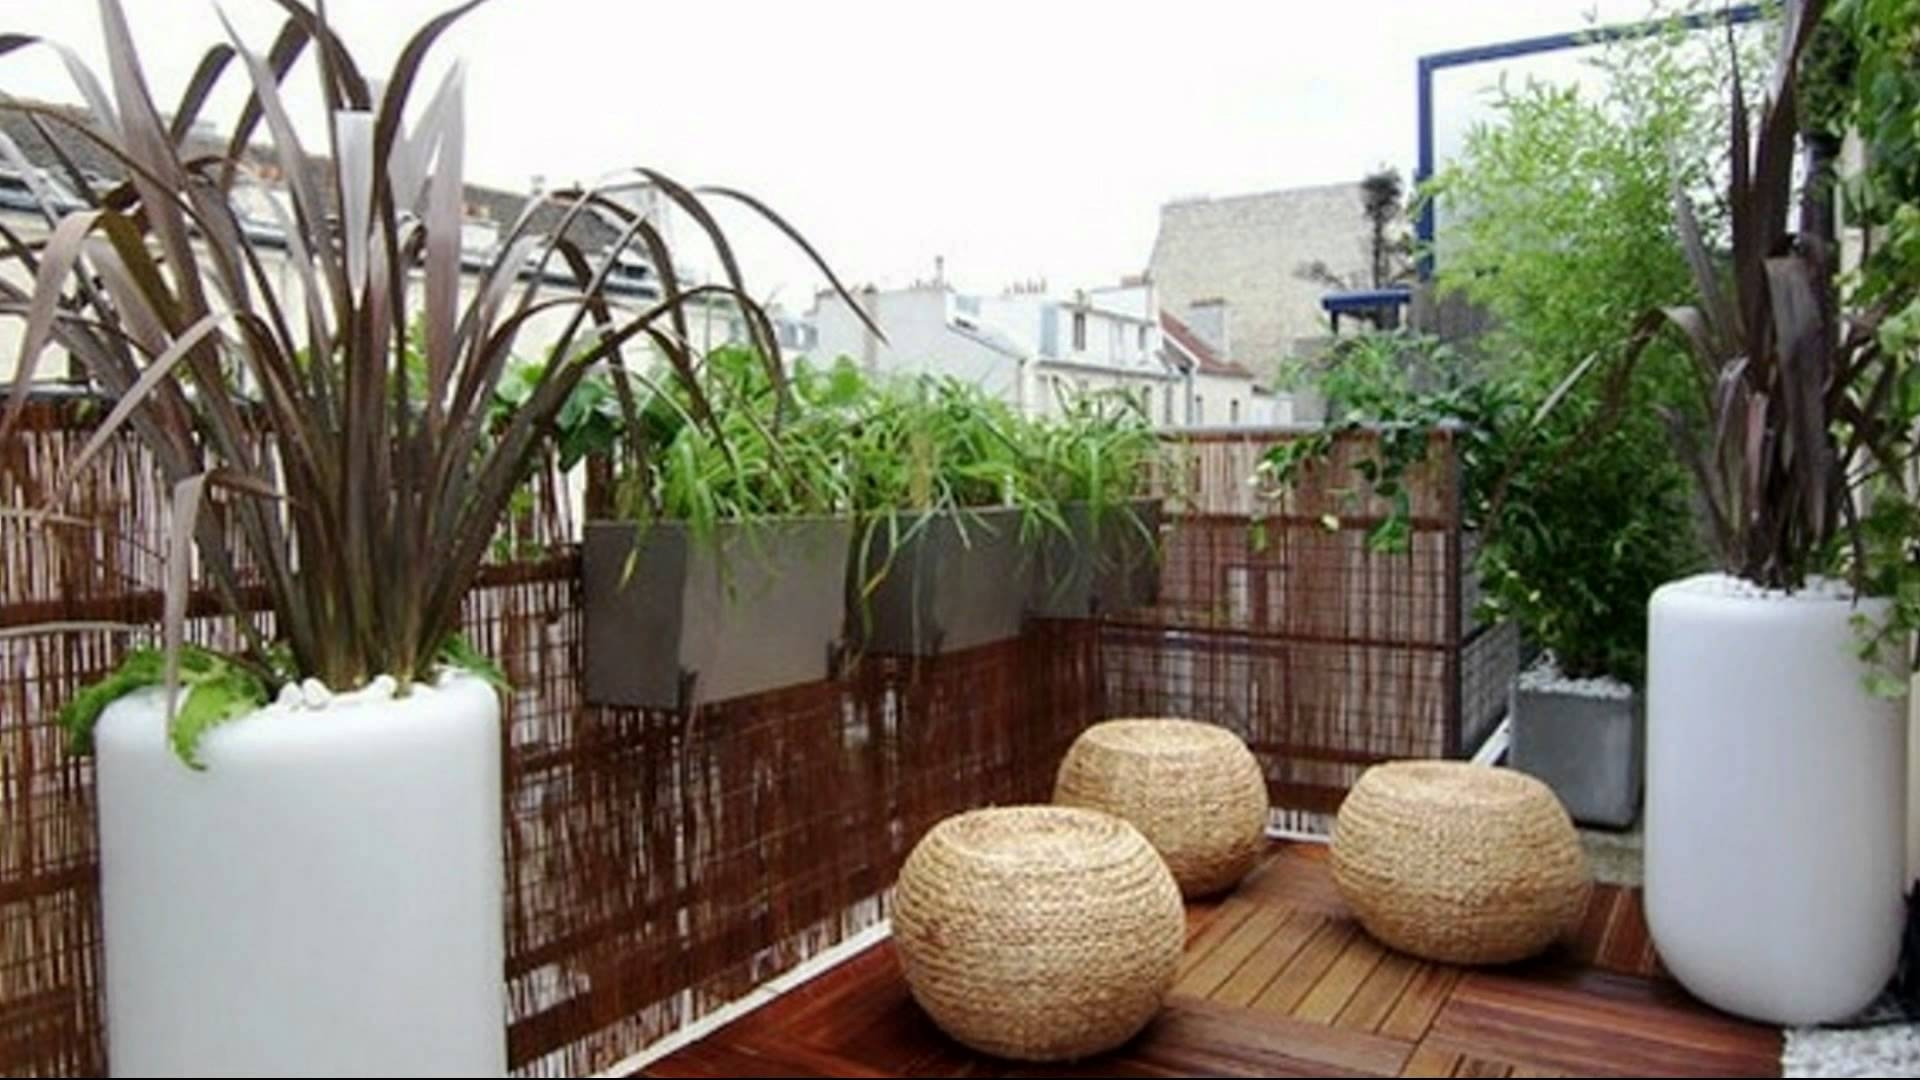 Terrace garden design pictures - Small Balcony Decorating Ideas Youtube For Best Apartment Terrace Garden Design Ideas